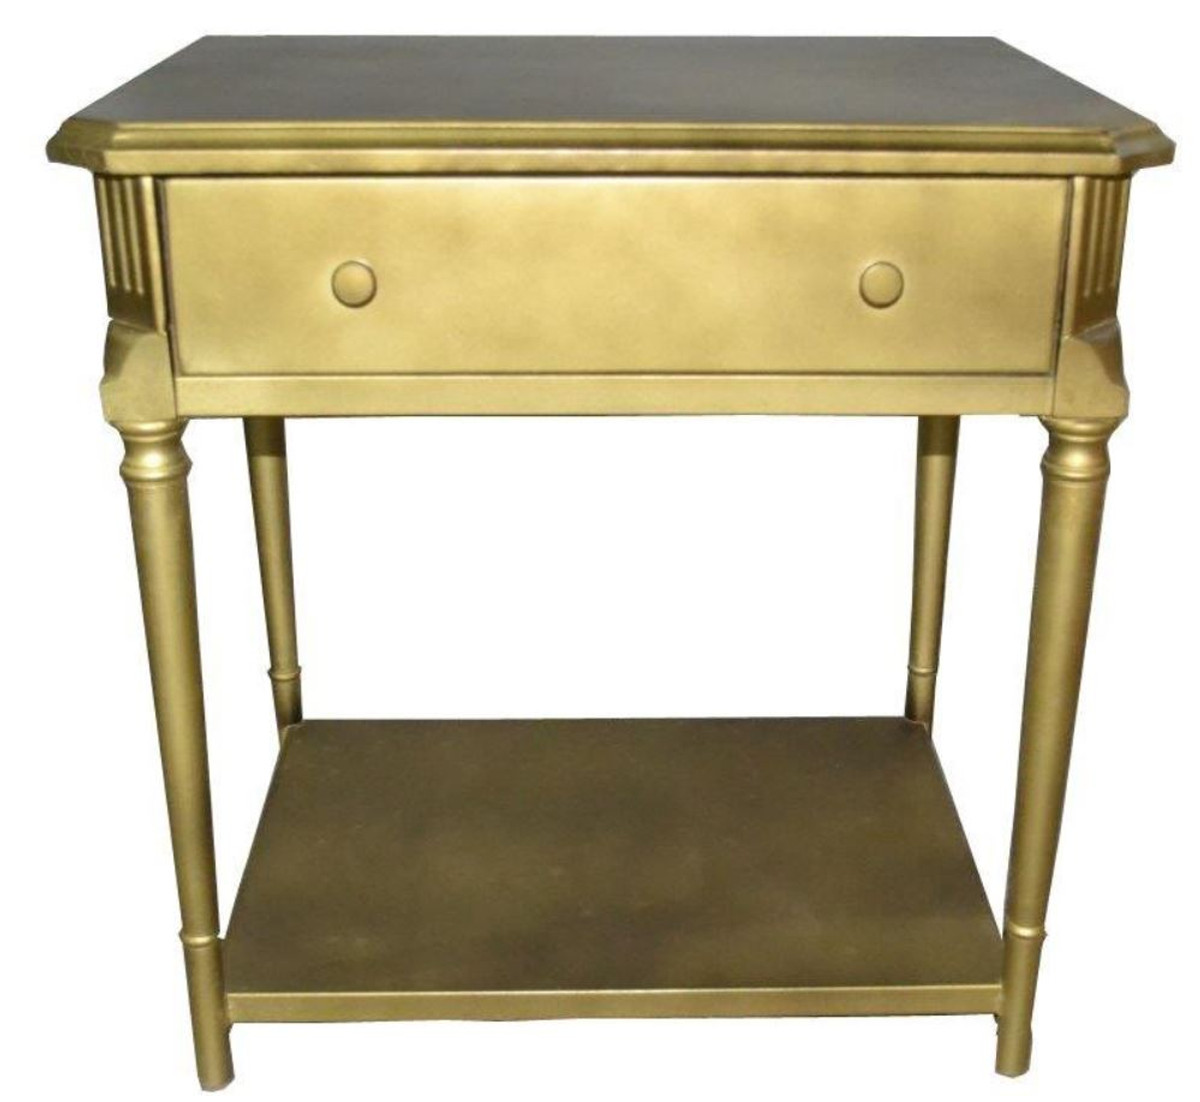 Casa Padrino Art Deco Luxury Bedside Table With Drawer Gold Antique Style Side Table Night Console Table